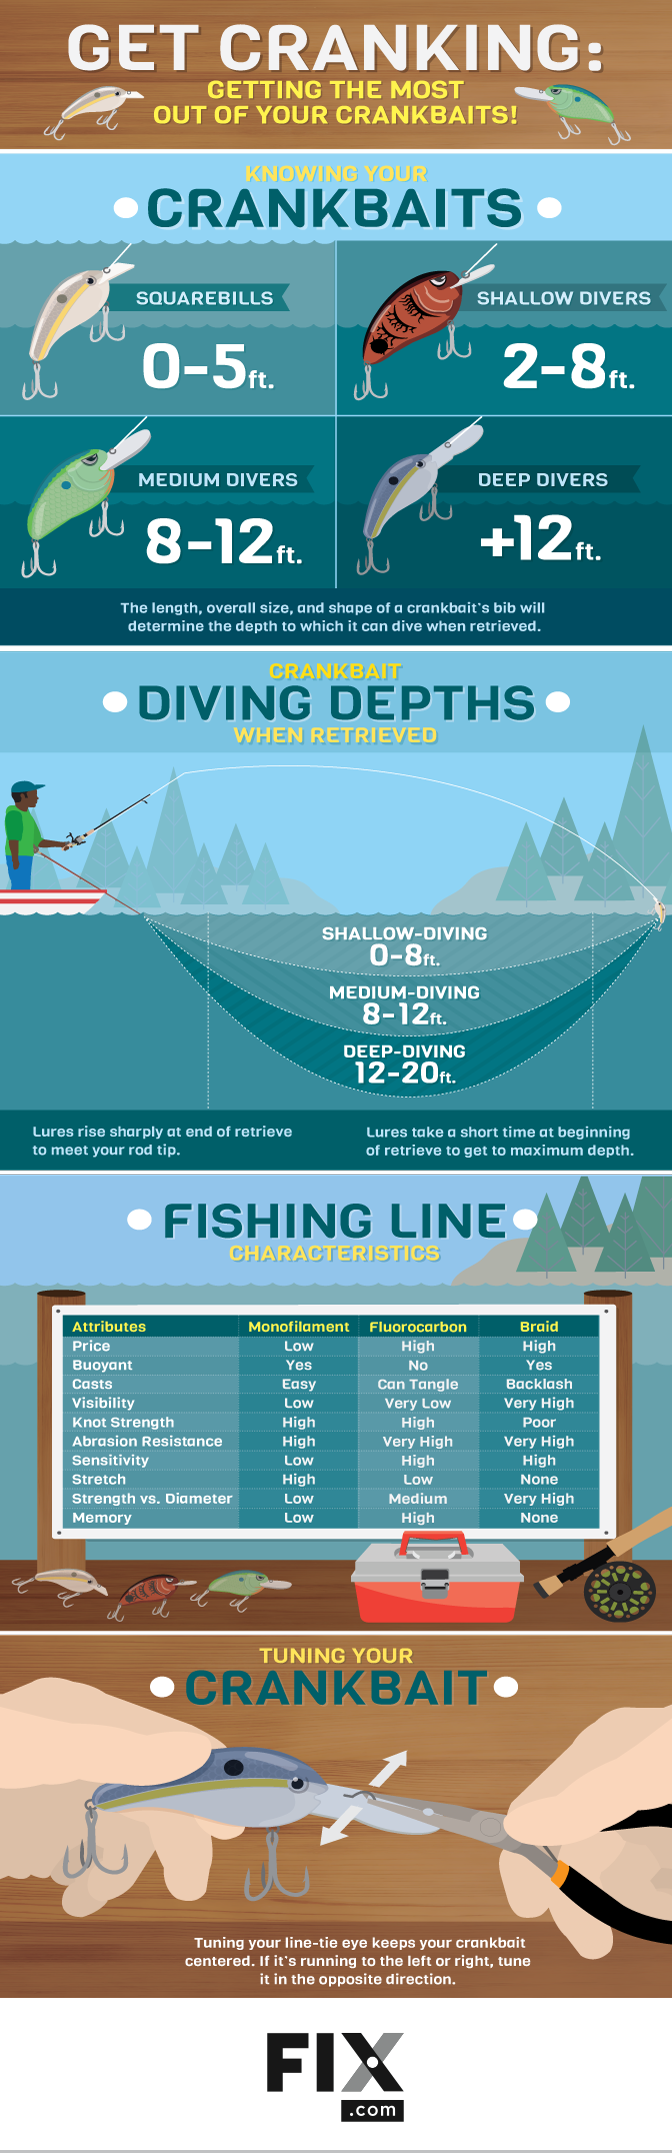 Get Cranking! How to Get the Most out of Your Crankbaits #infographic